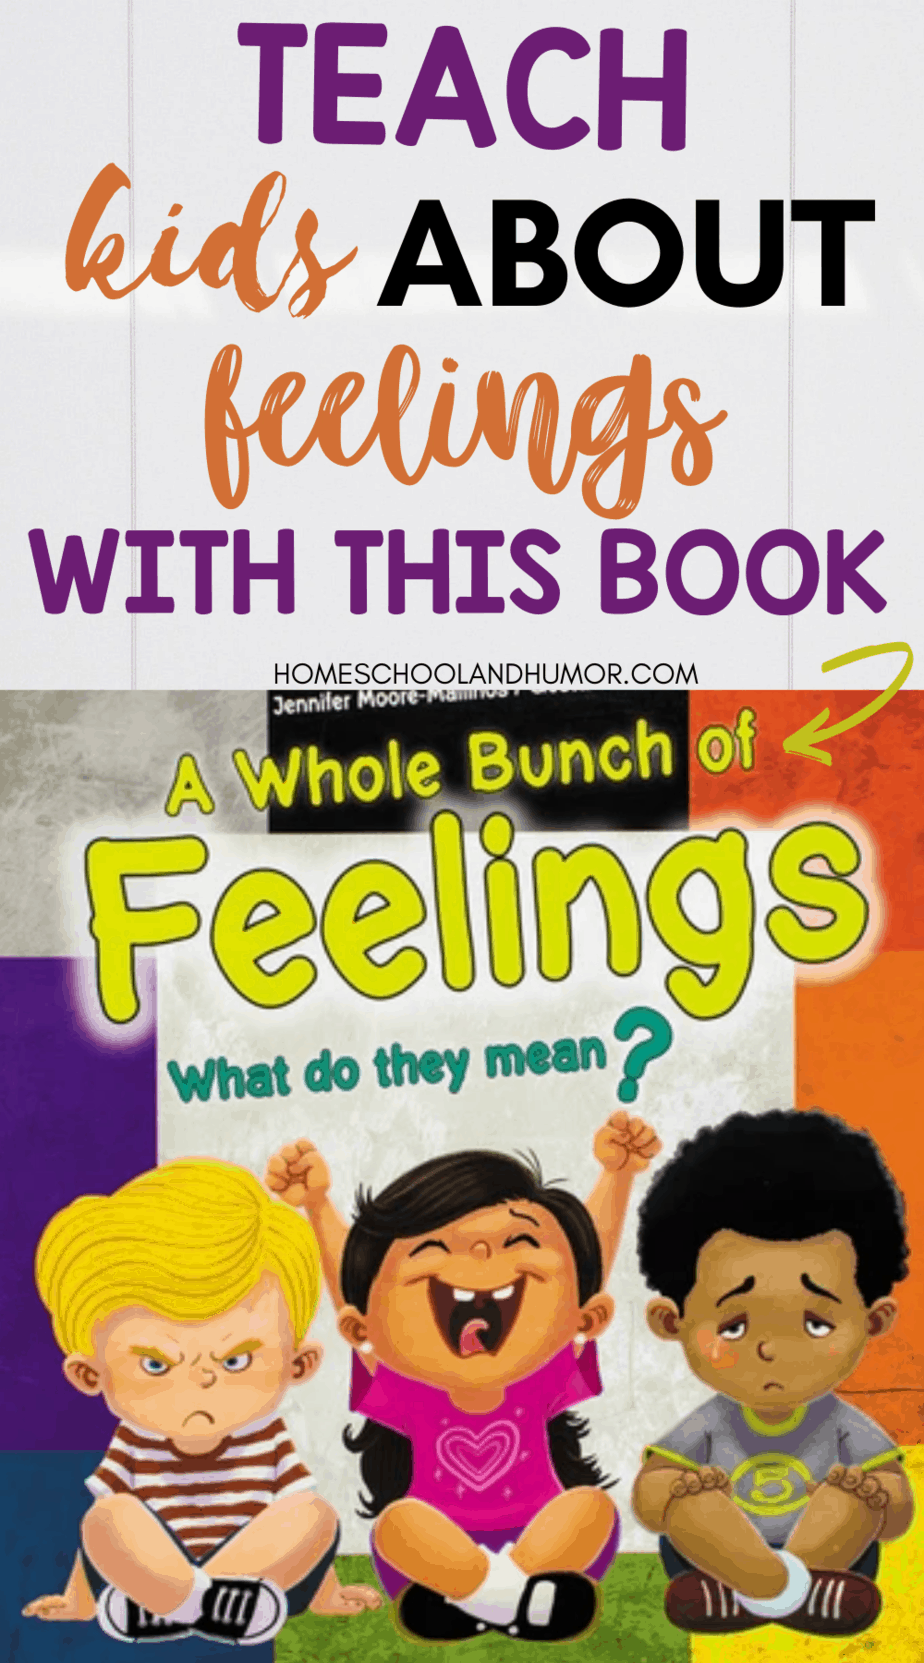 A Whole Bunch of Feelings: A Book About Feelings For Kids